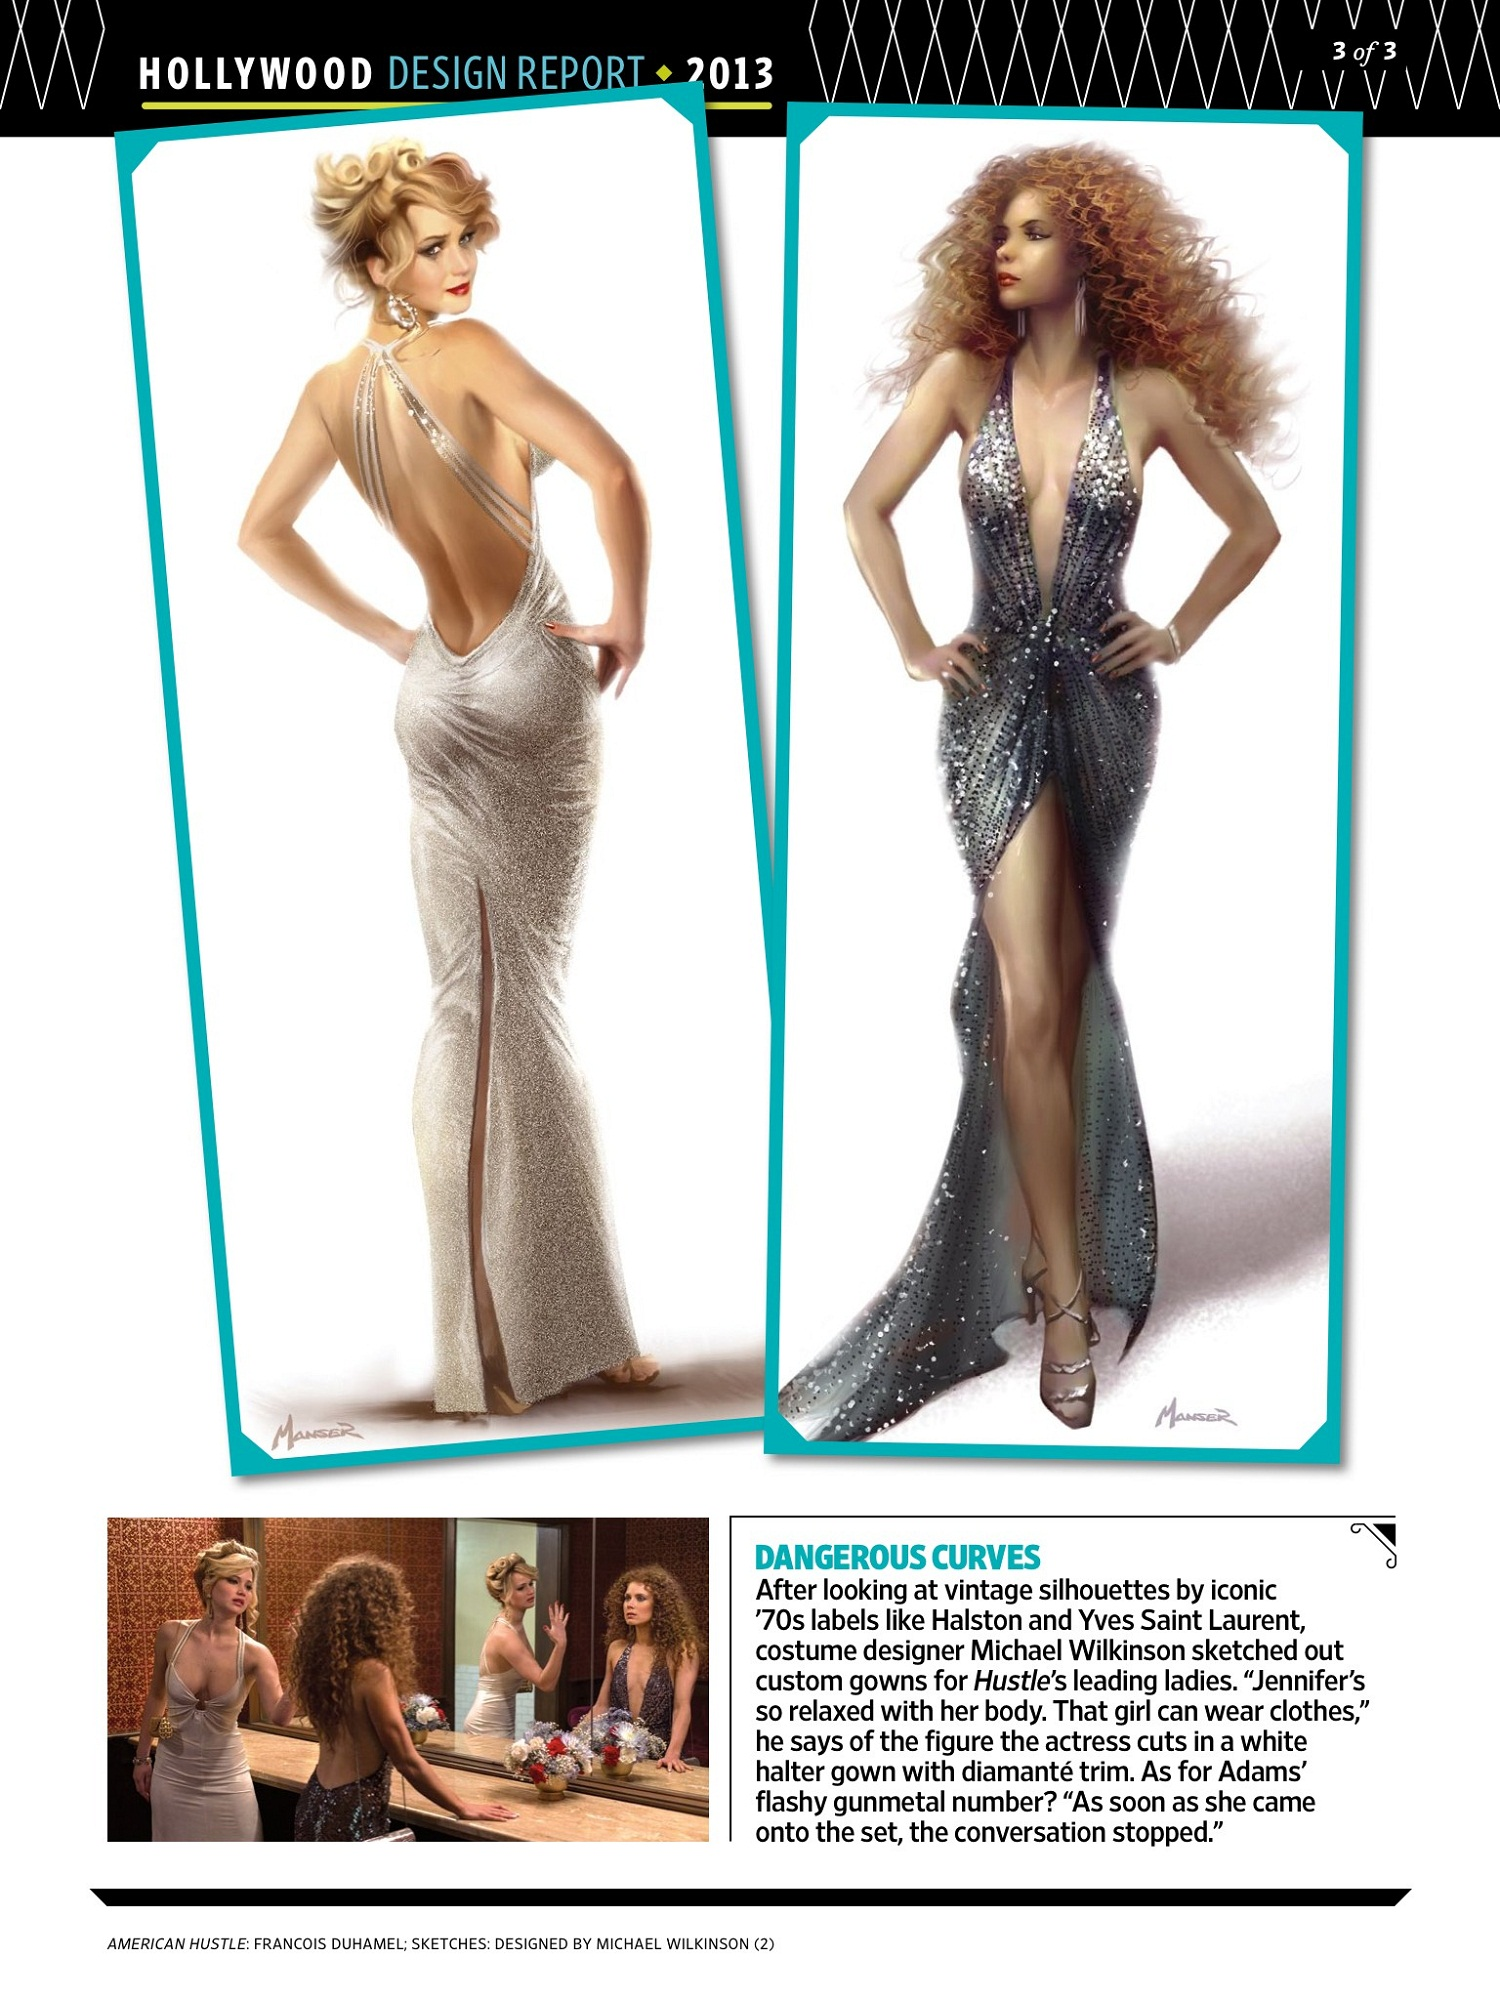 ew 22 nov 2013 003 Entertainment Weekly: The Look Of American Hustle (Scans)